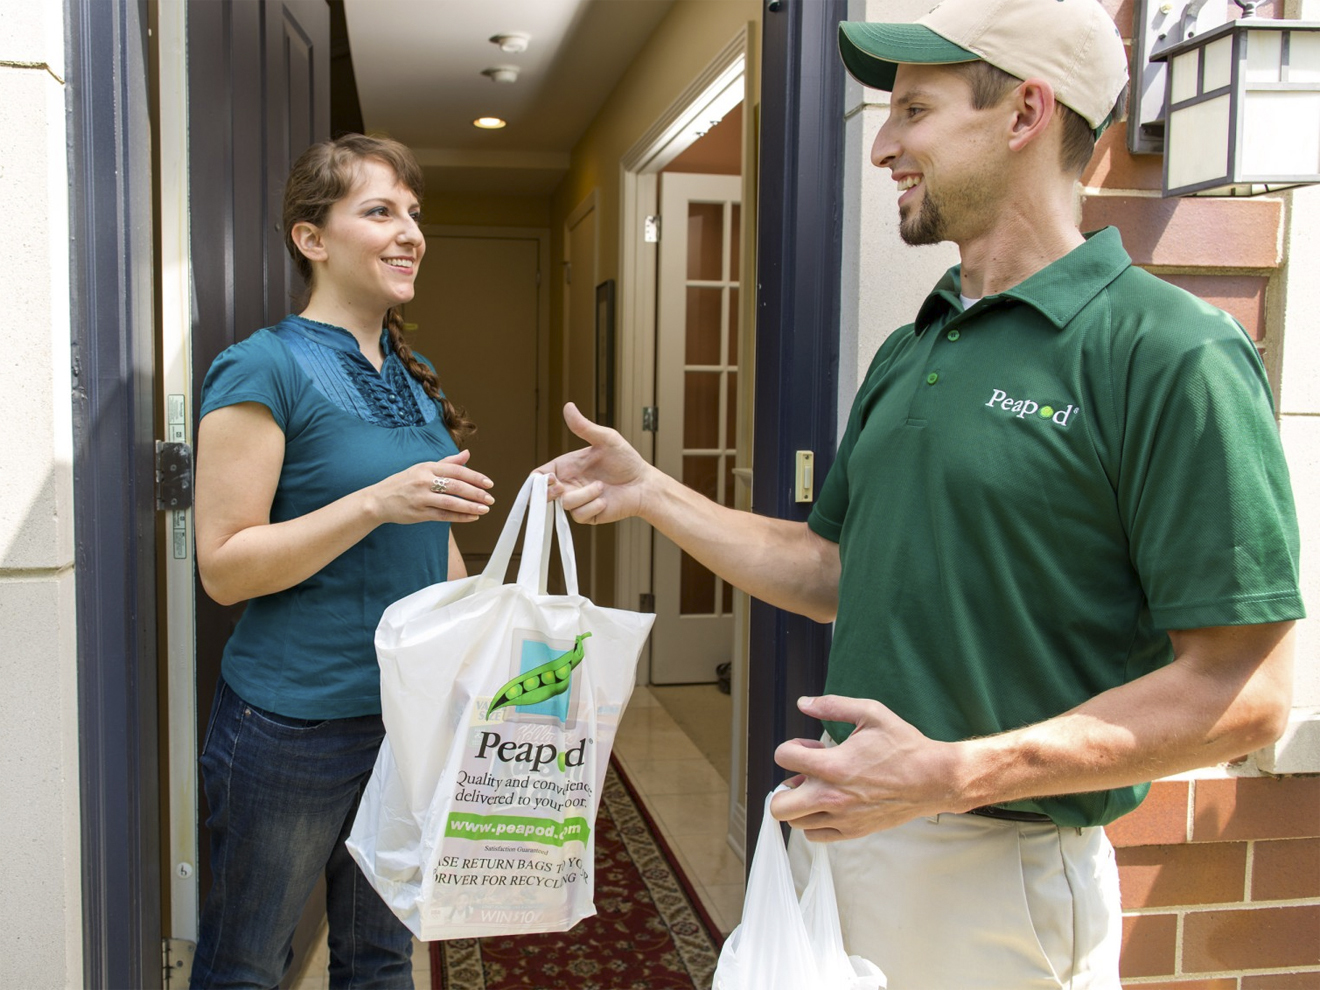 6 Grocery delivery Peapod